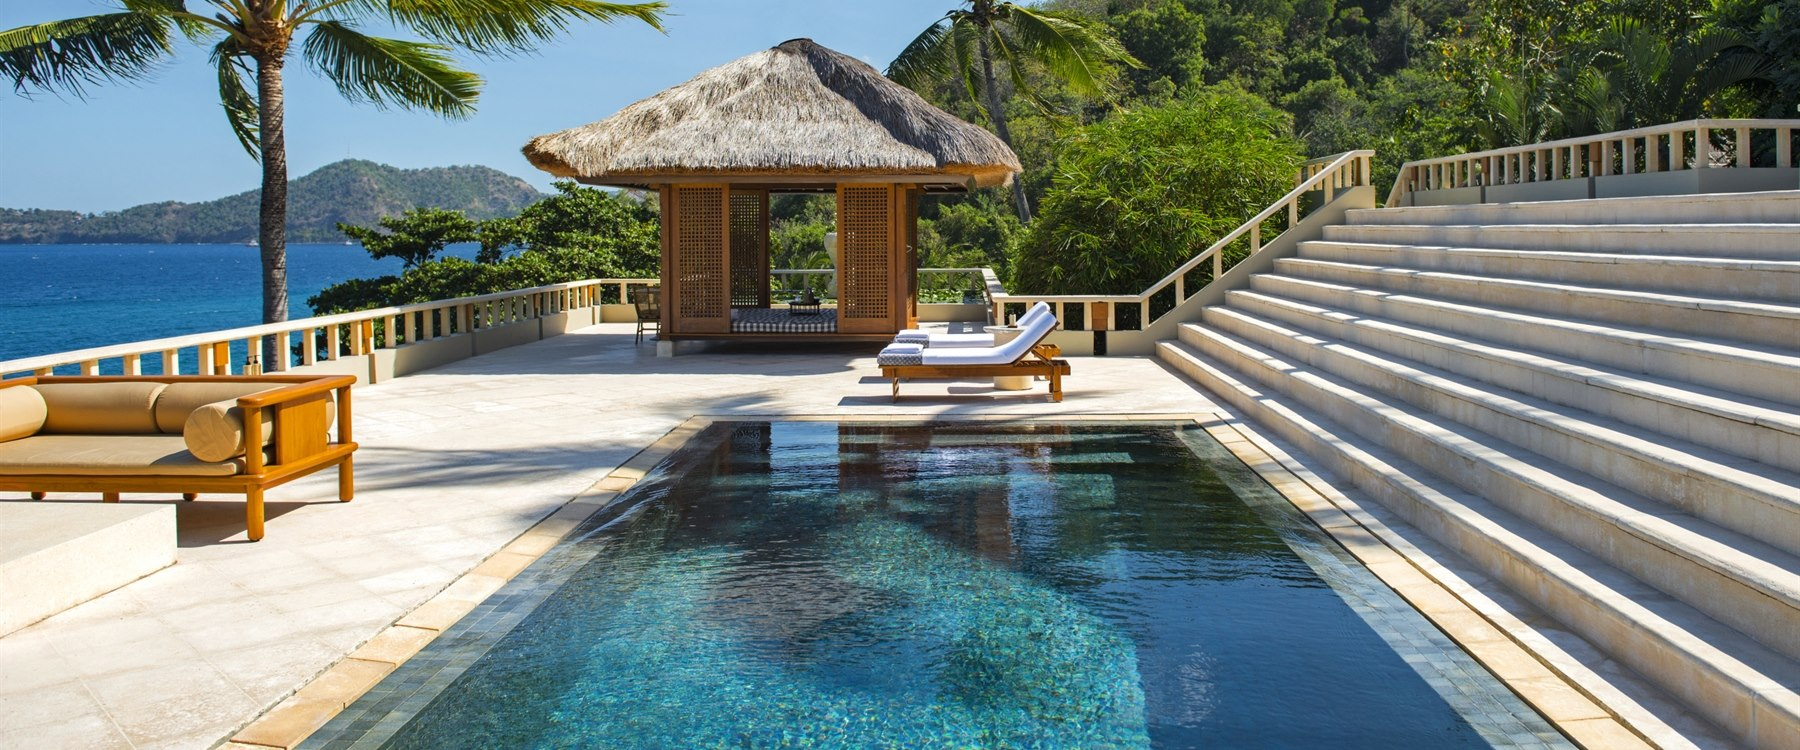 Suite Pool at Amankila, Bali